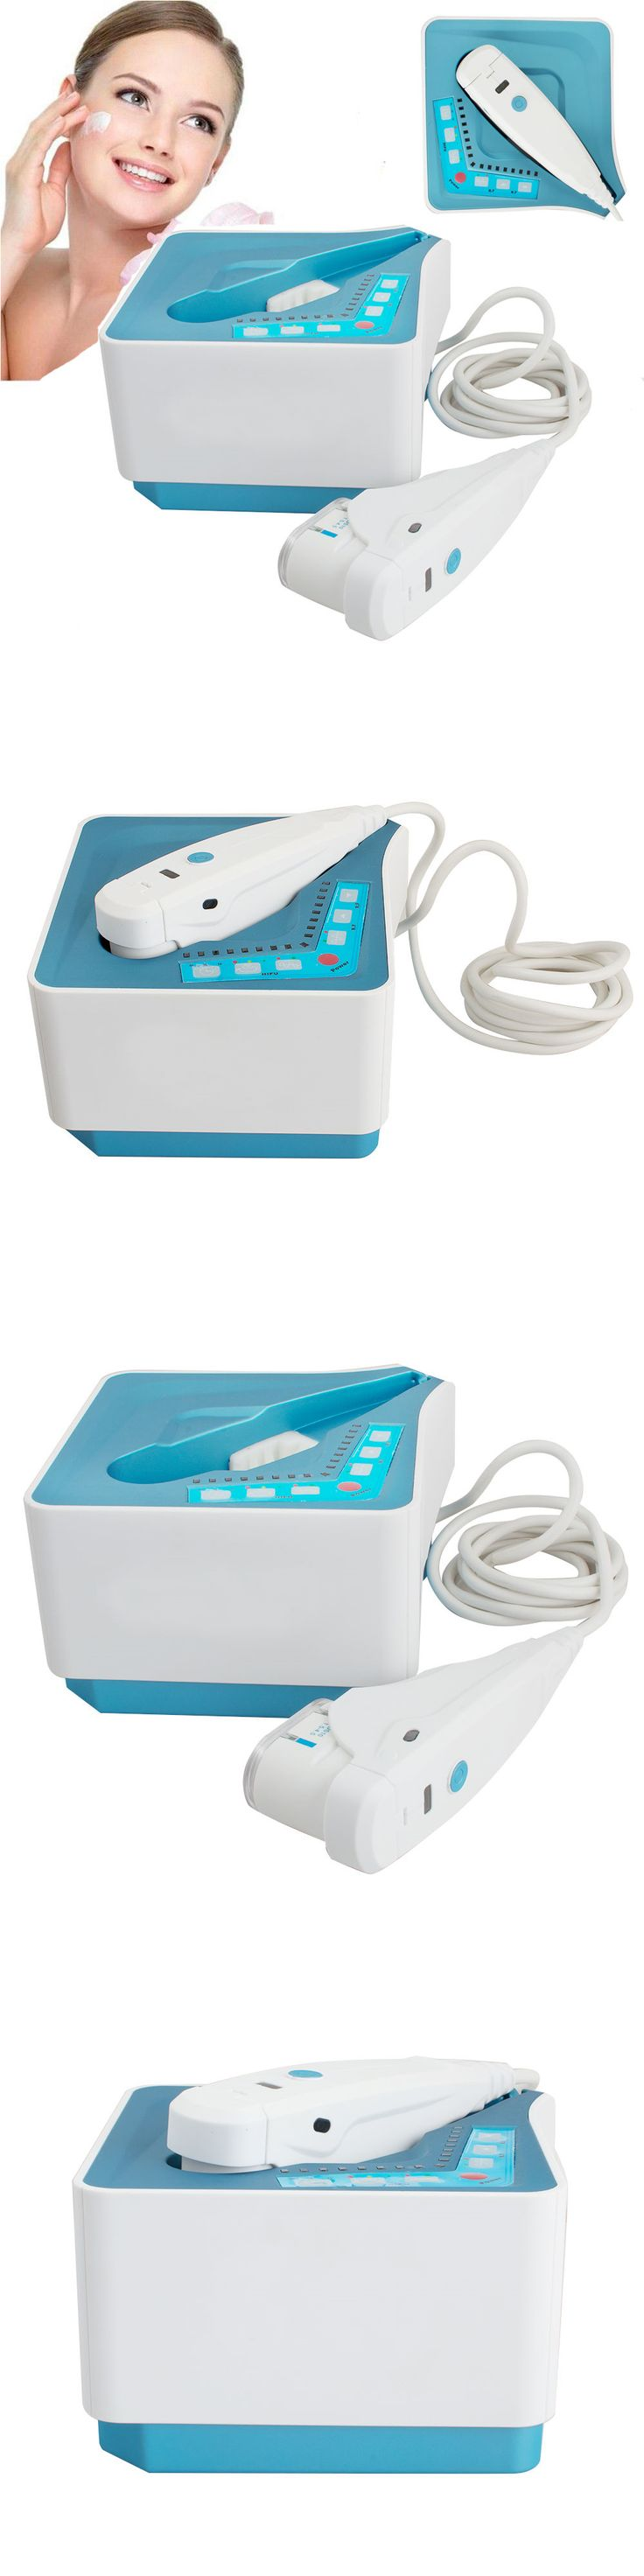 Professional Facial Machines: High Intensity Focused Ultrasound Ultrasonic Rf Led Facial Machine Spa 110V Goe -> BUY IT NOW ONLY: $404.27 on eBay!